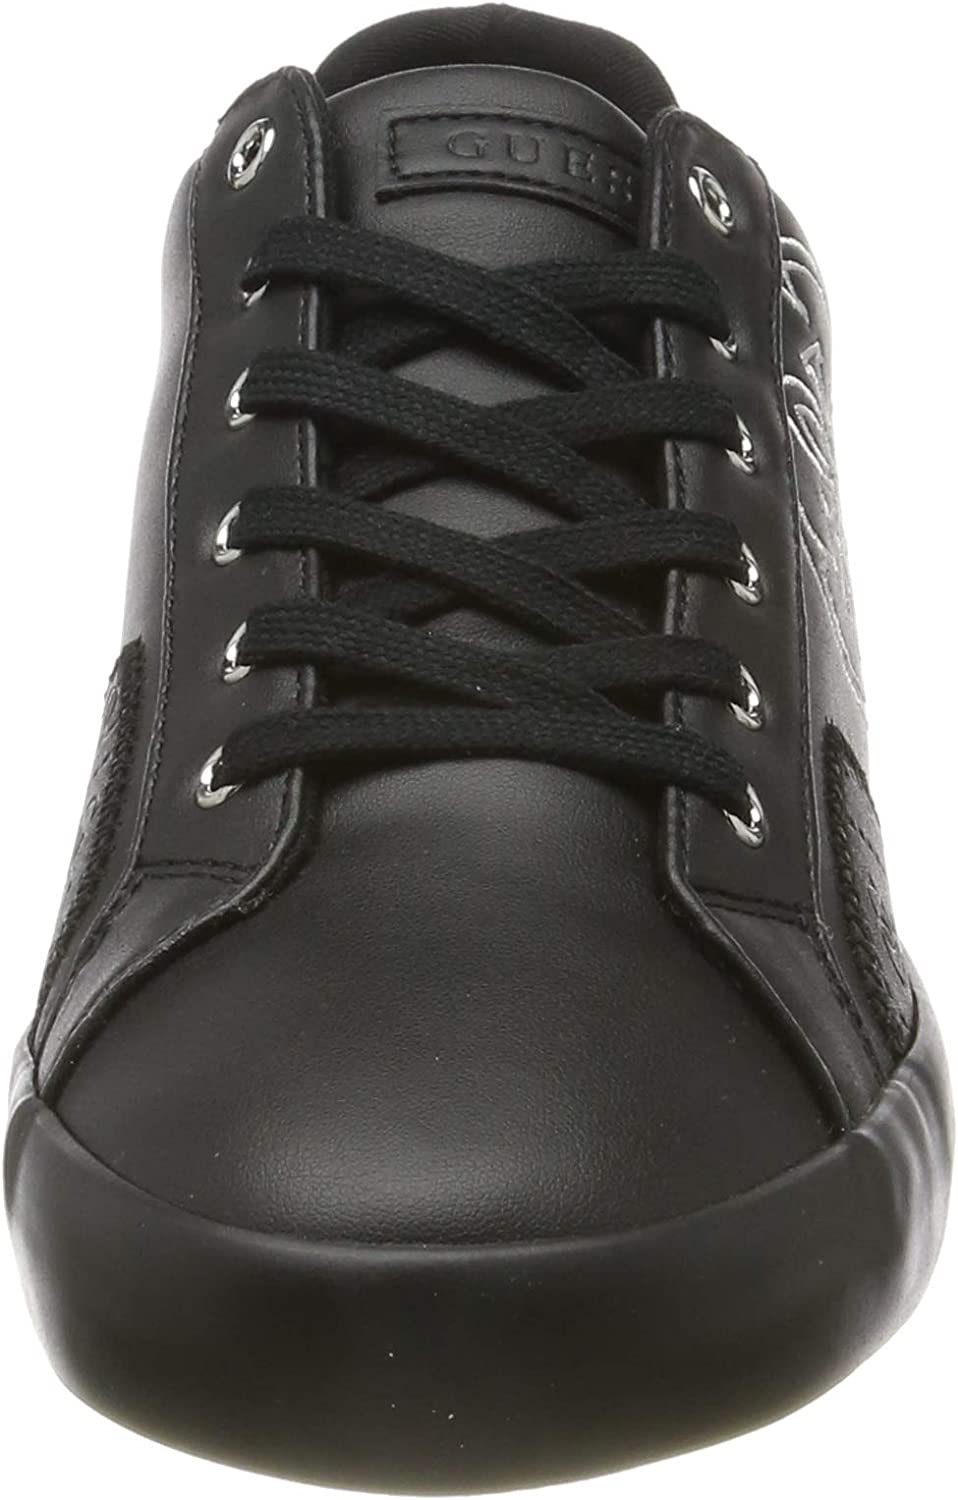 Guess Pica/Active Lady/Leather Like, Zapatillas de Gimnasia para Mujer Negro Black Black Bl